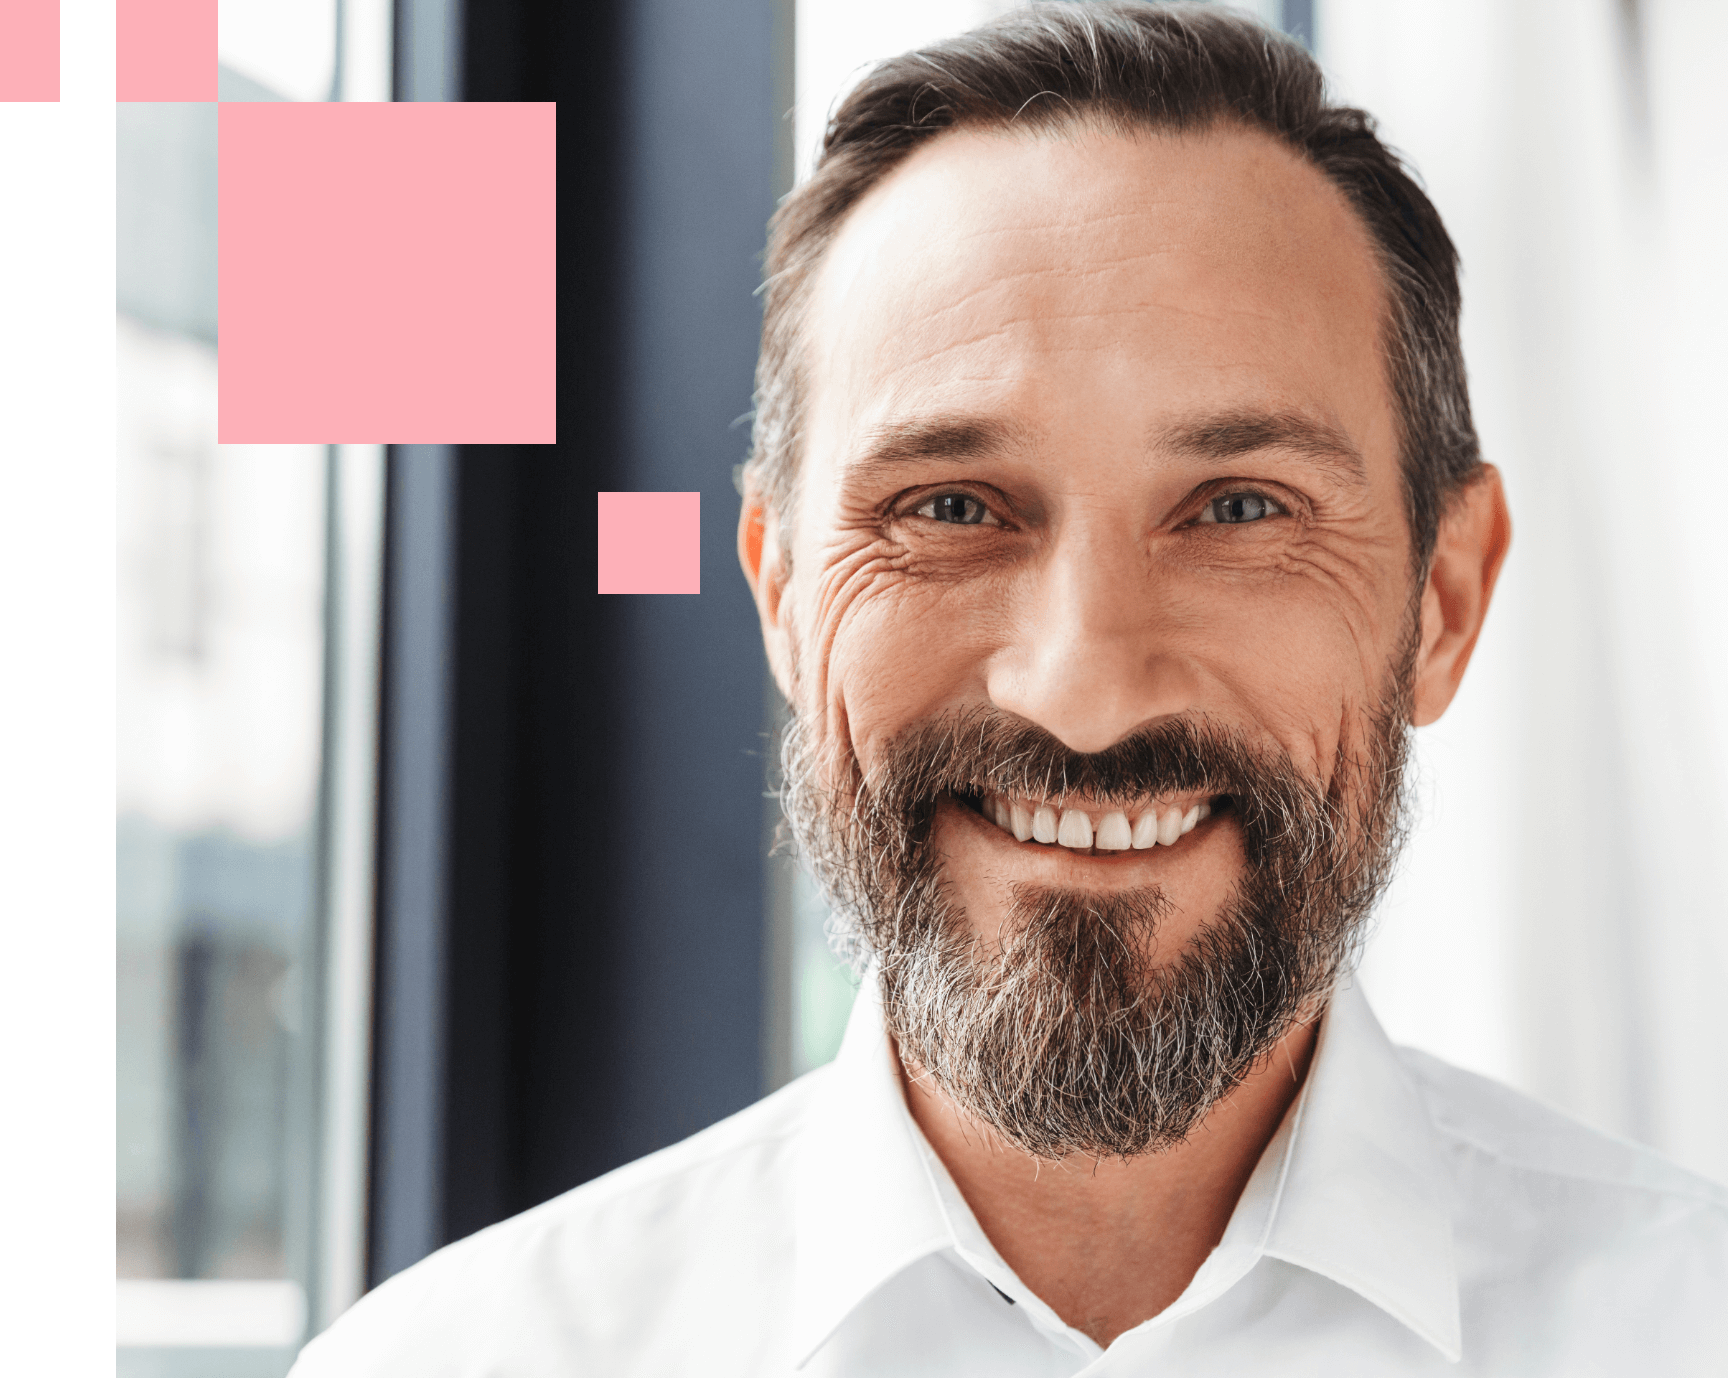 a middle aged man with beard smiling